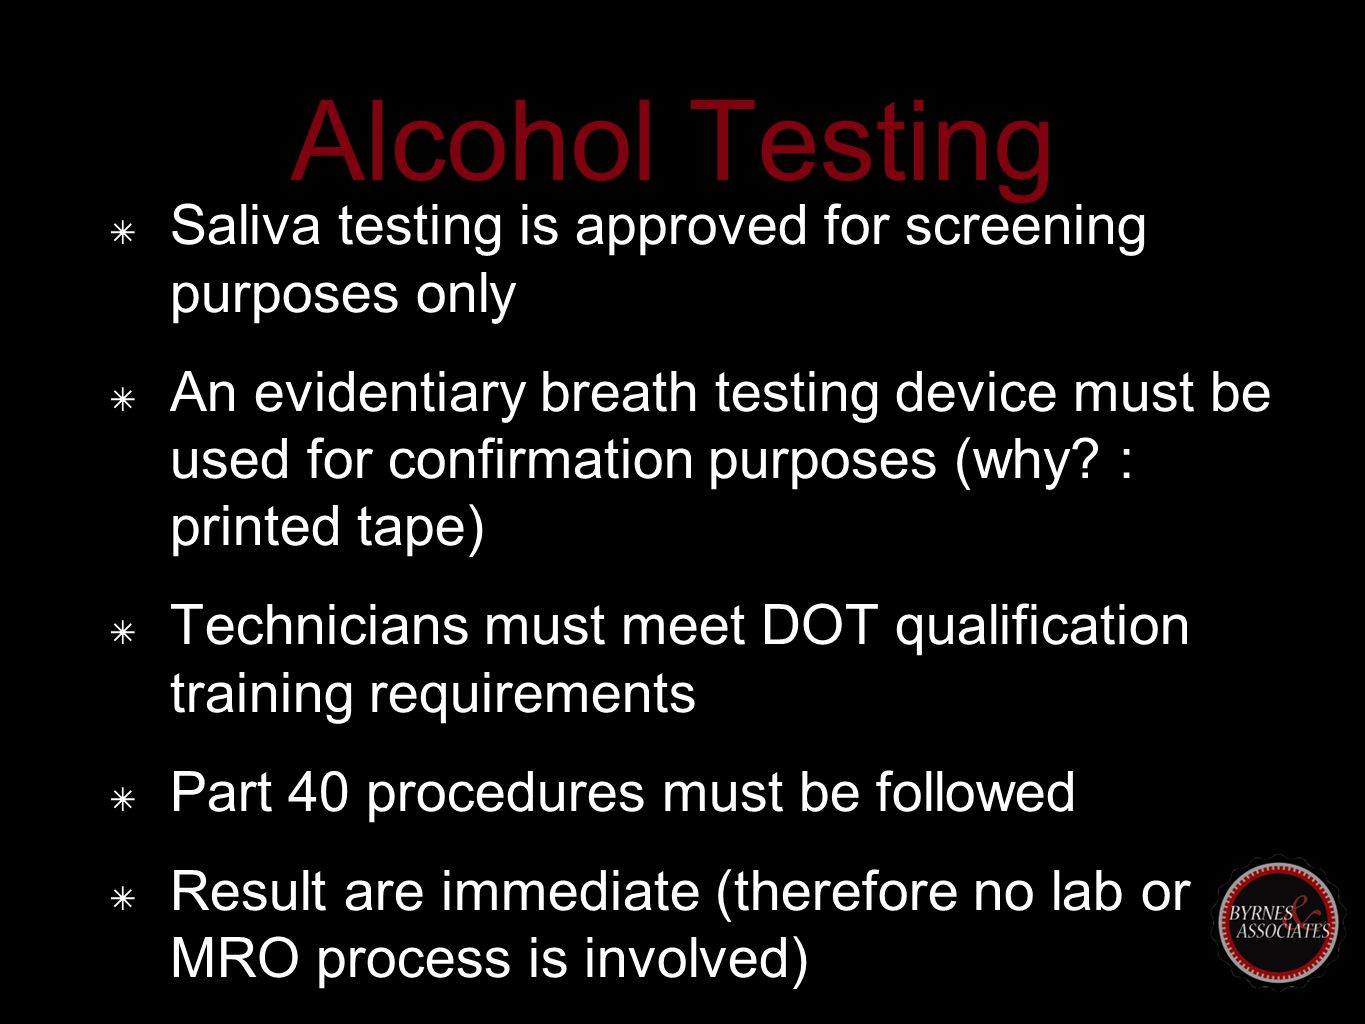 ✴ Saliva testing is approved for screening purposes only ✴ An evidentiary breath testing device must be used for confirmation purposes (why? : printed